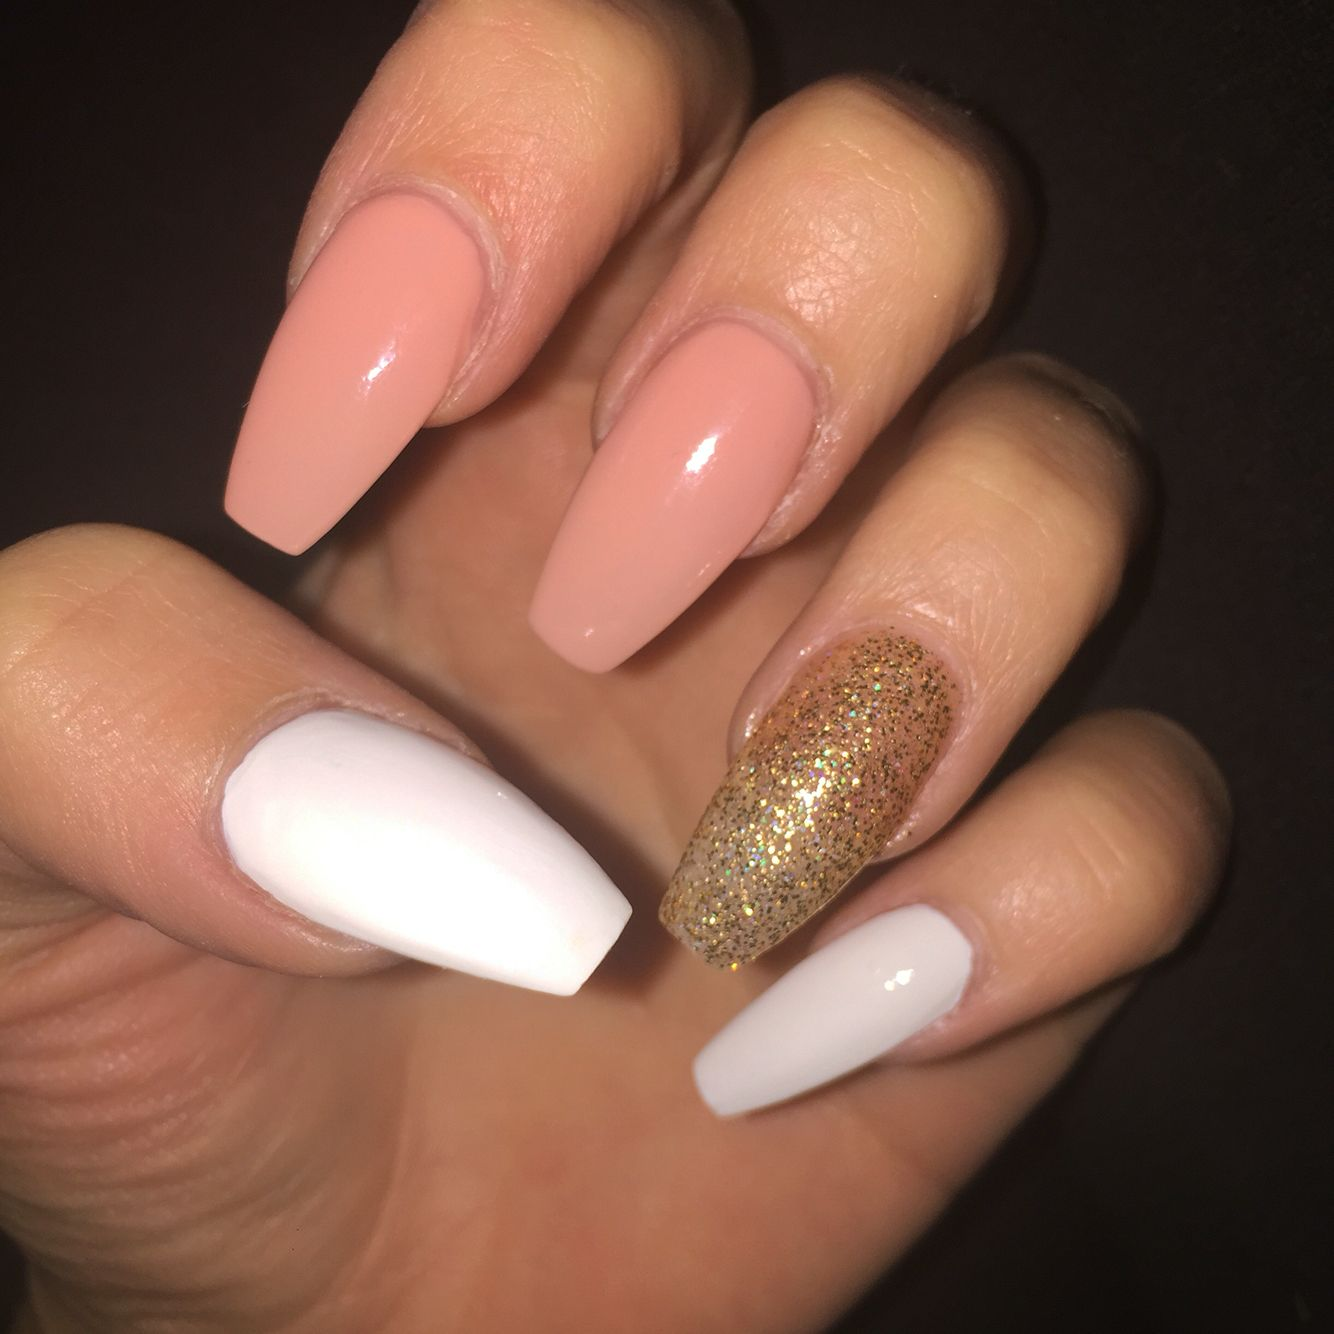 Simple nails | Simple acrylic nails, Fall acrylic nails ...